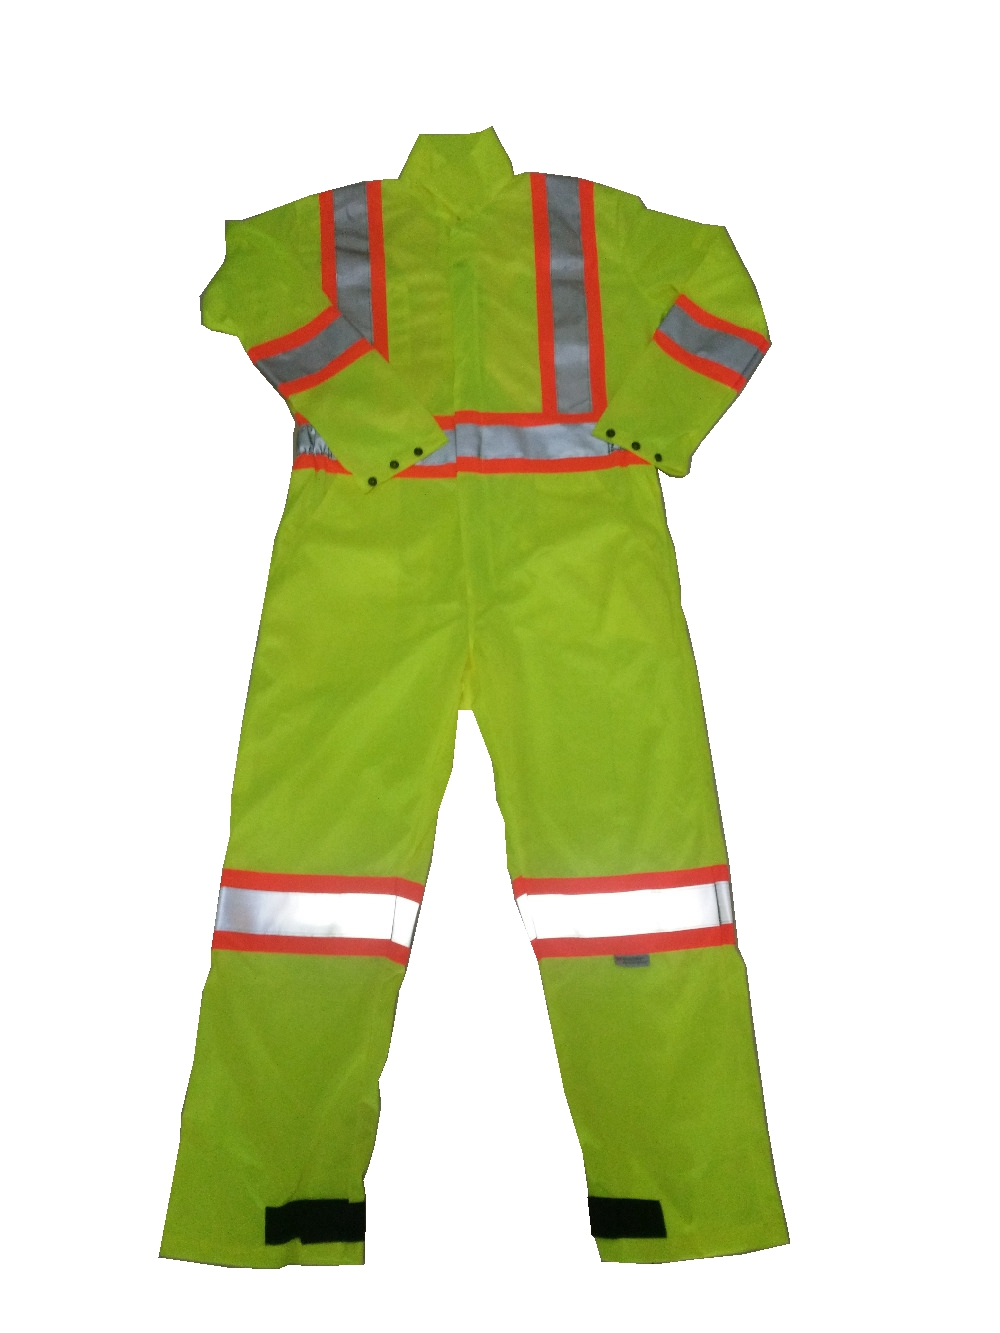 Fluorescence Yellow High Visibility Safety workwear Hi Viz Work Coat coverall workwear coveralls suits w era часы  наклейка римский циферблат  30х16 см   fh2dyjb